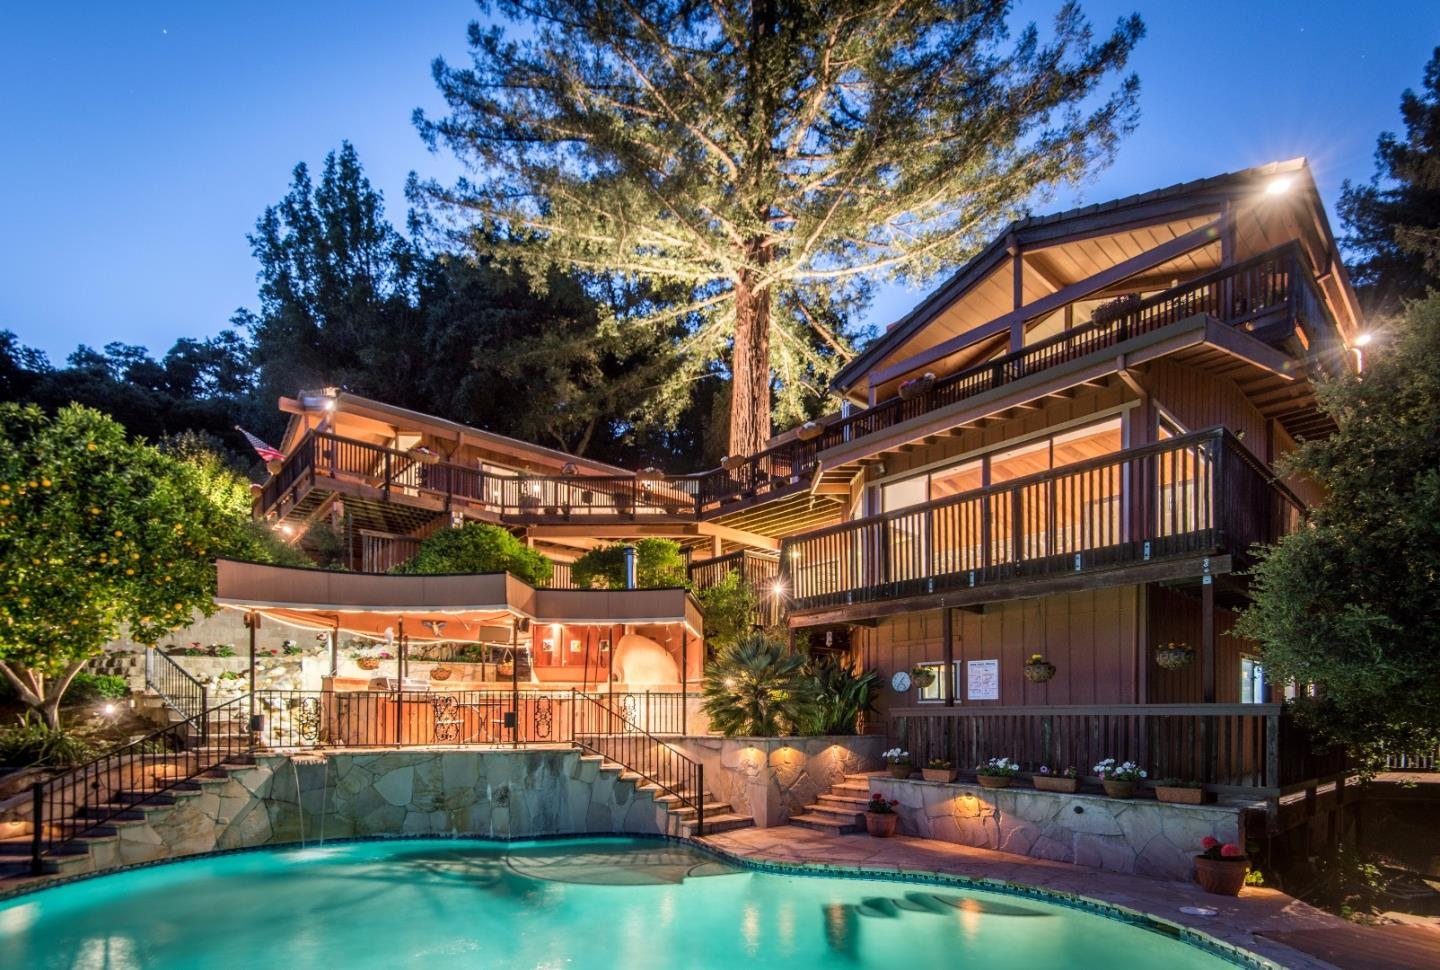 Single Family Home for Sale at 16200 Old Japanese Road Los Gatos, California 95033 United States